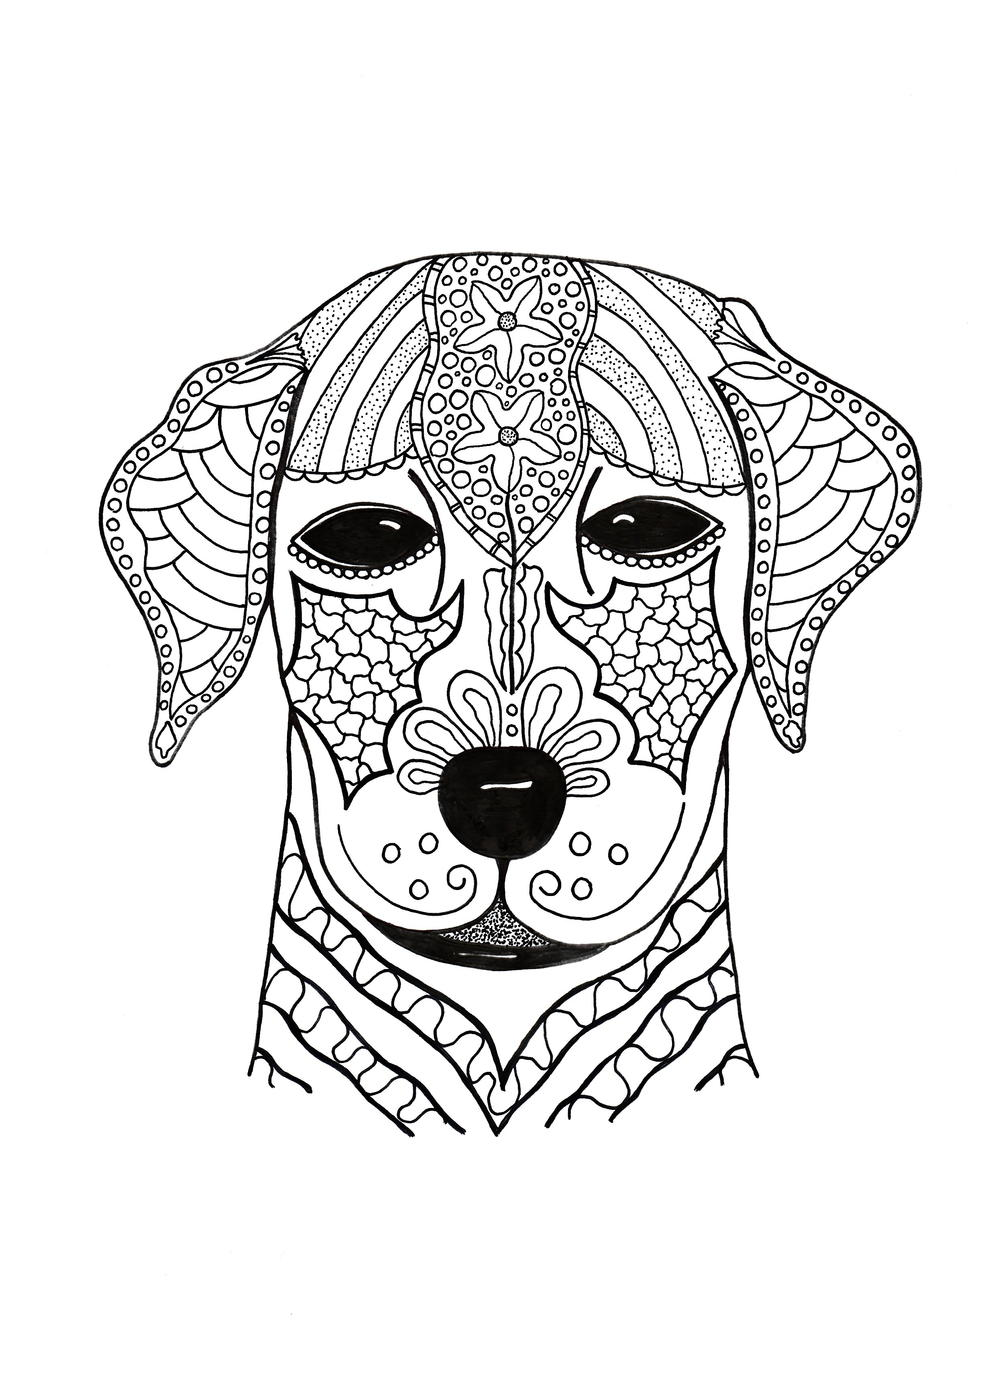 difficult dog coloring pages hard coloring pages of dogs at getcoloringscom free coloring dog difficult pages